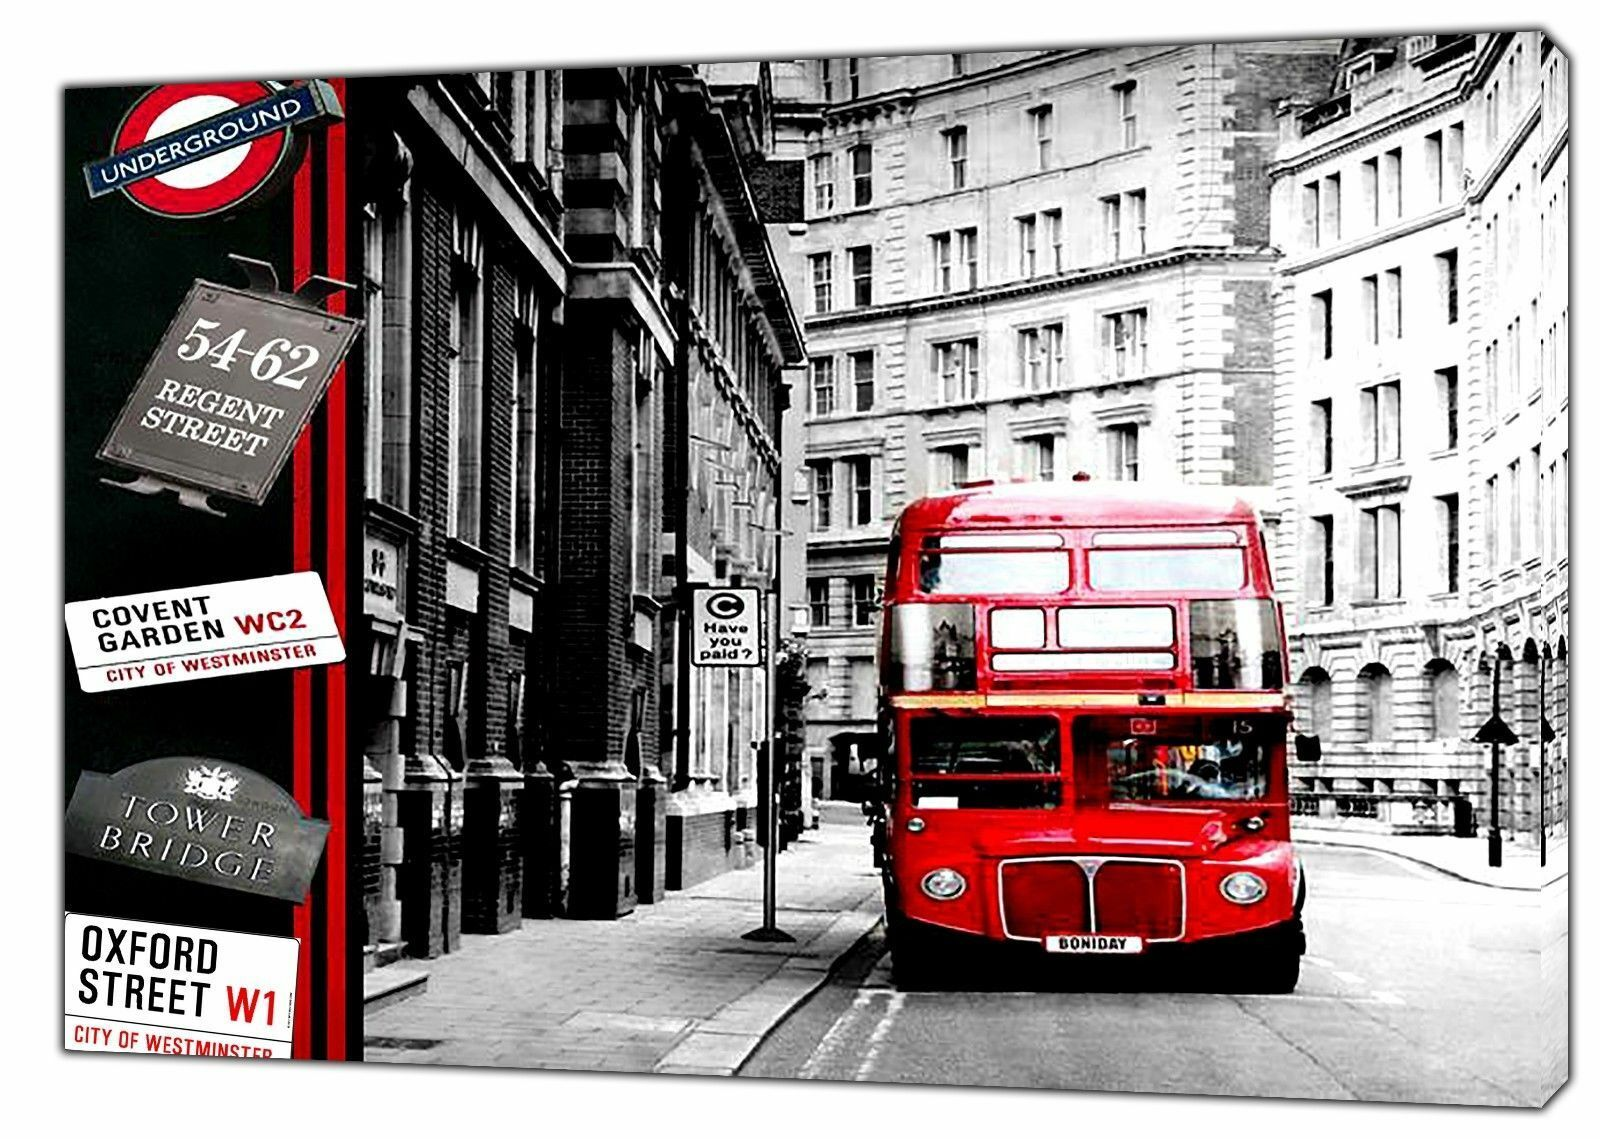 LONDON STREET rot BUS PICTURE PRINT ON WOOD FRAMED CANVAS WALL ART DECORATION